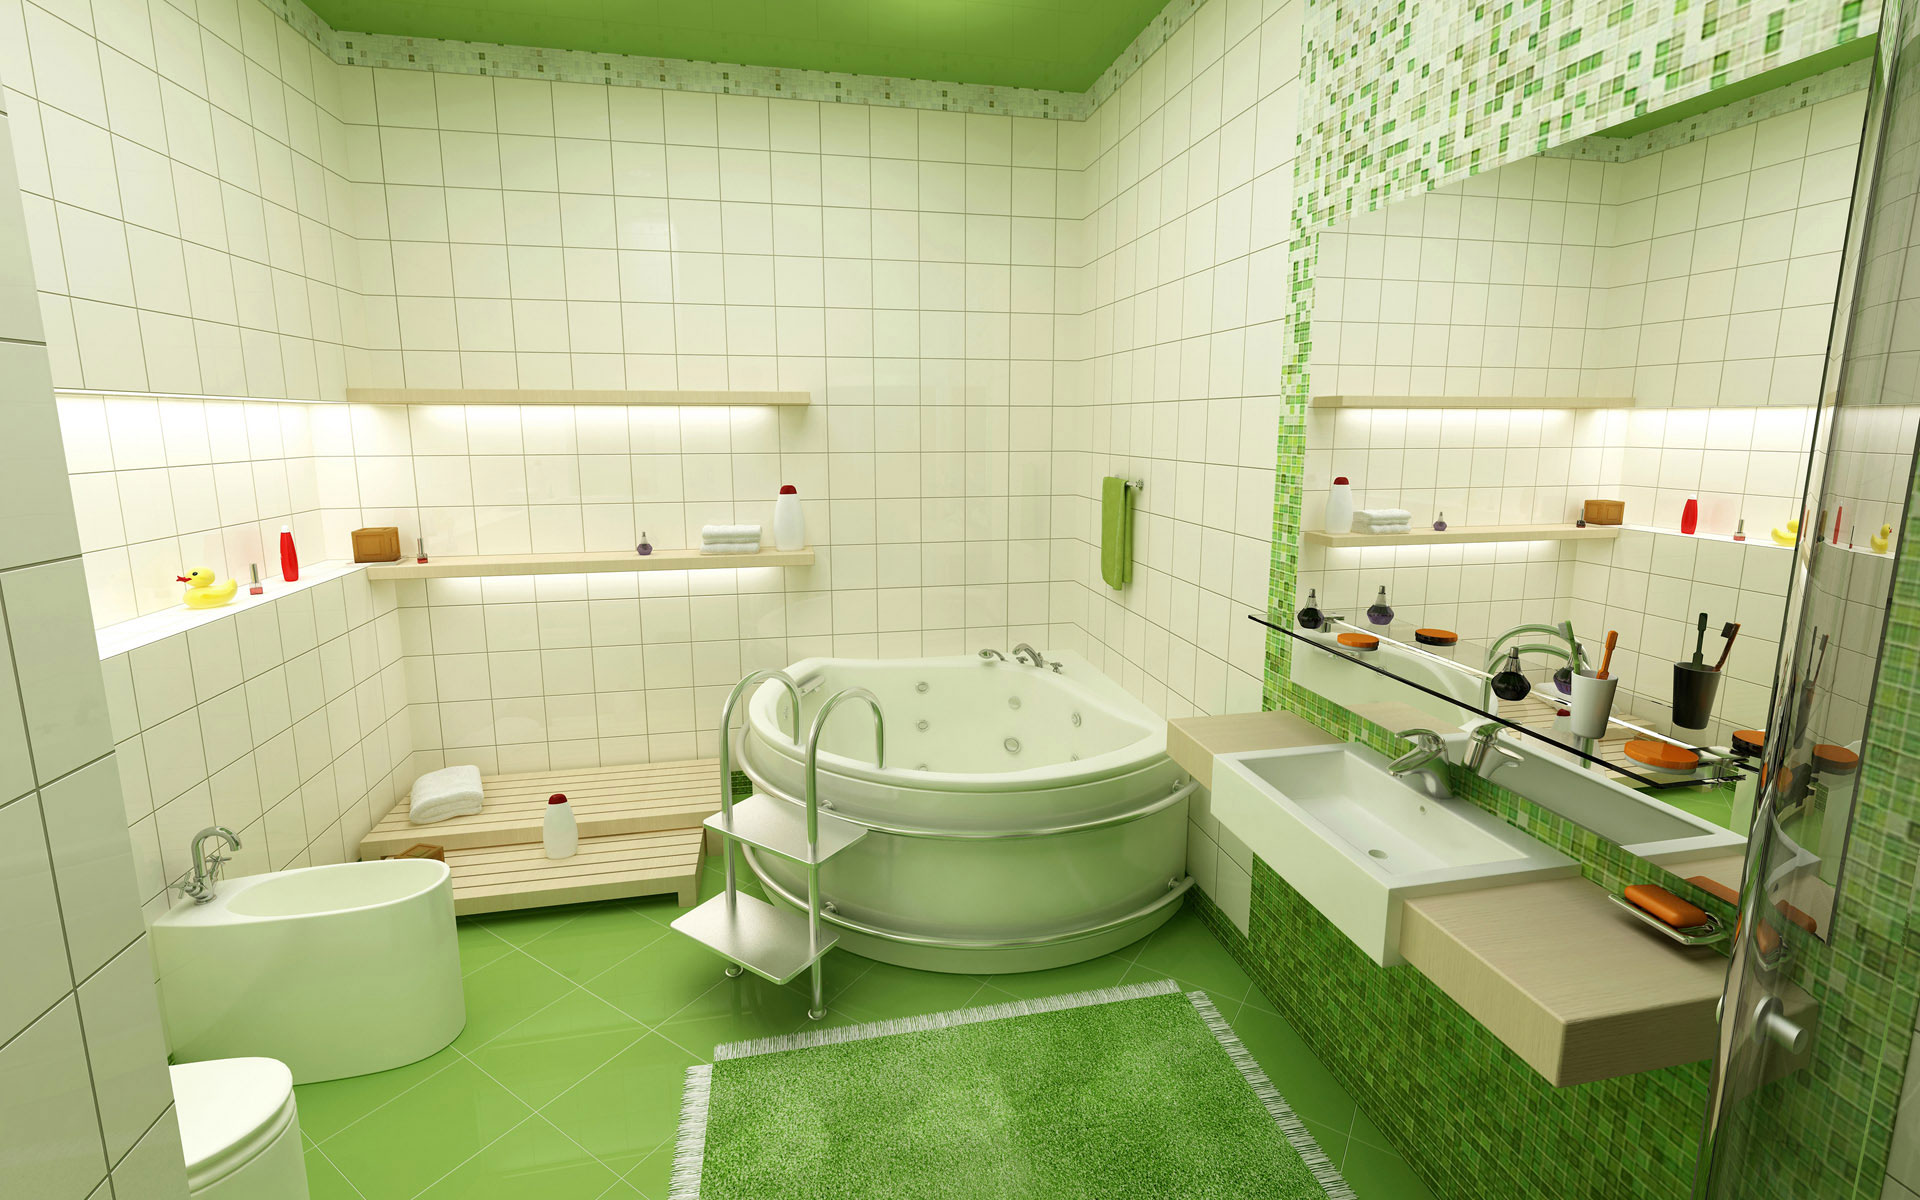 40 sea green bathroom tiles ideas and pictures for Bathroom ideas without bathtub